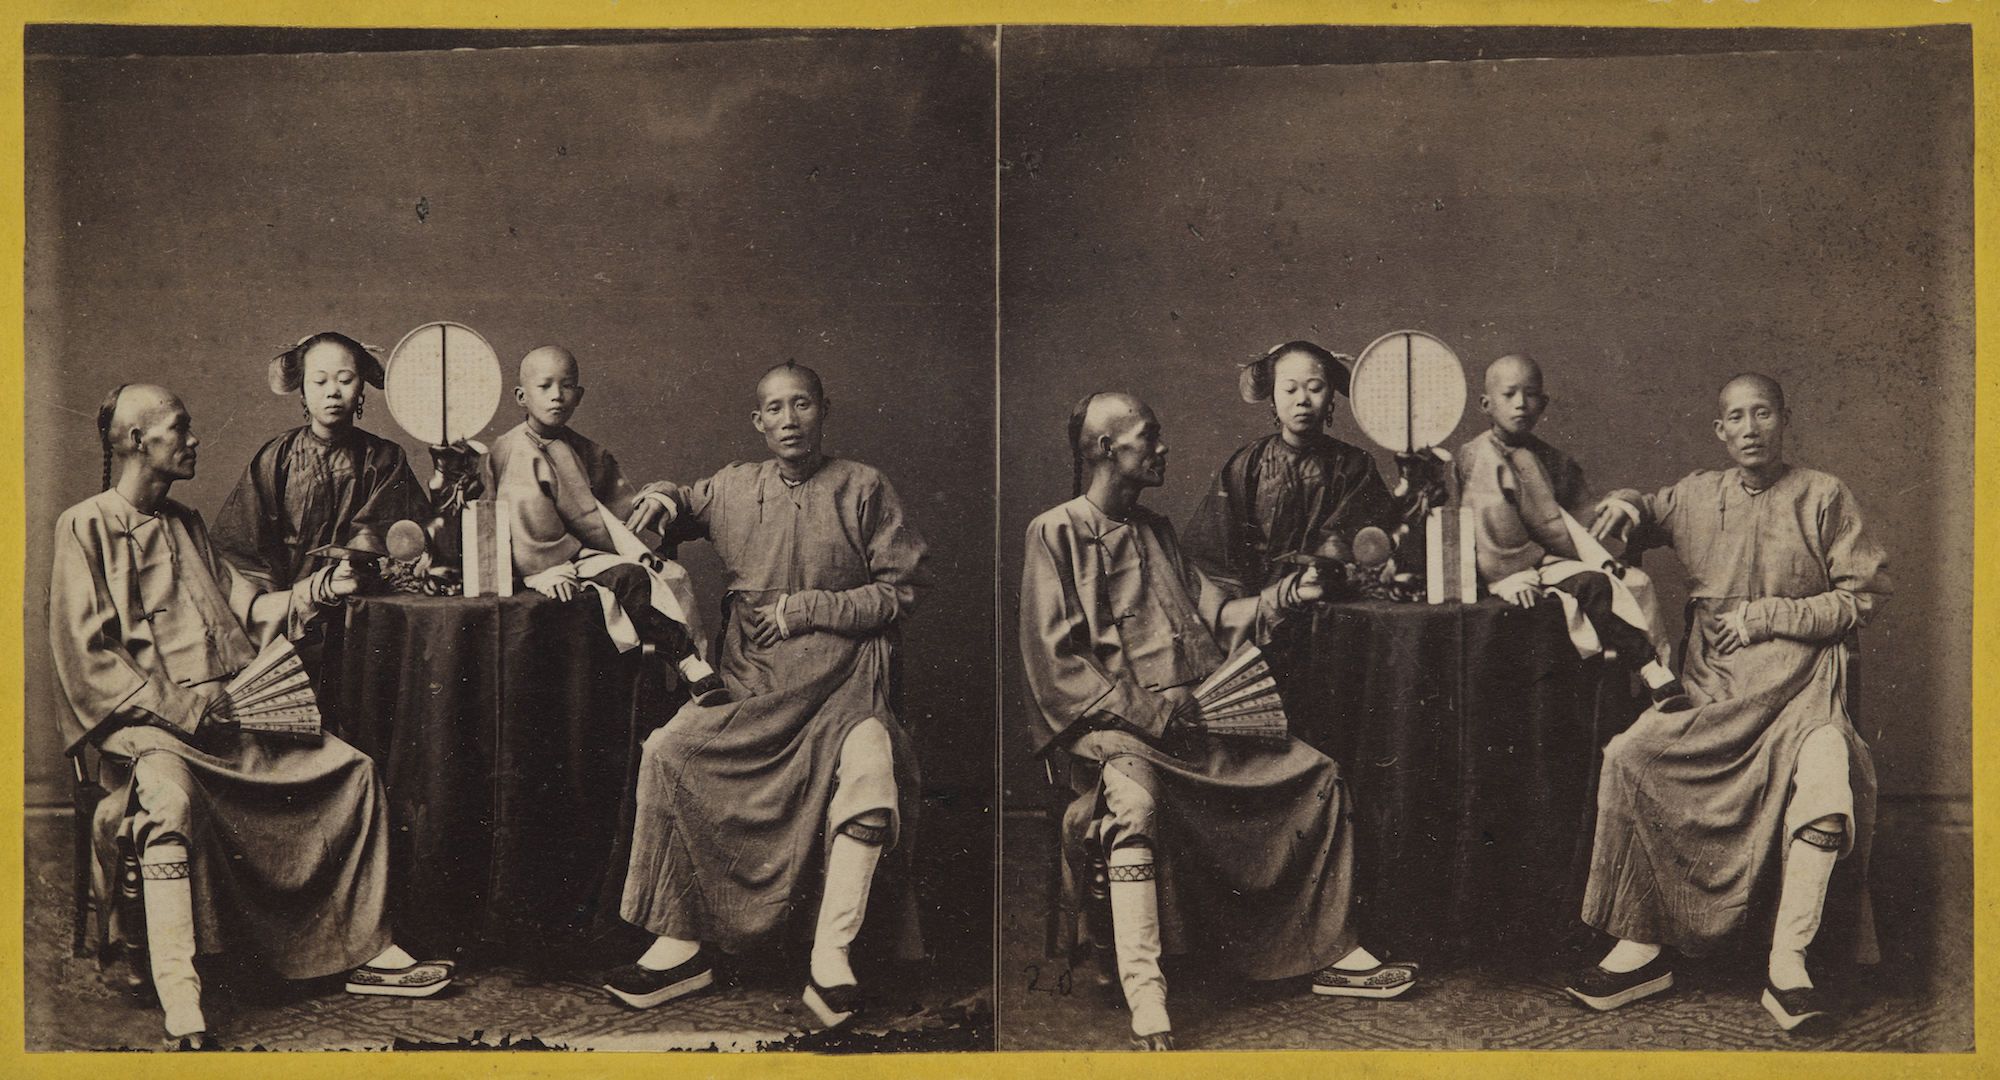 ミルトン・ミラー「商人たち」=1860年ごろ/The Loewentheil Collection of China Photography